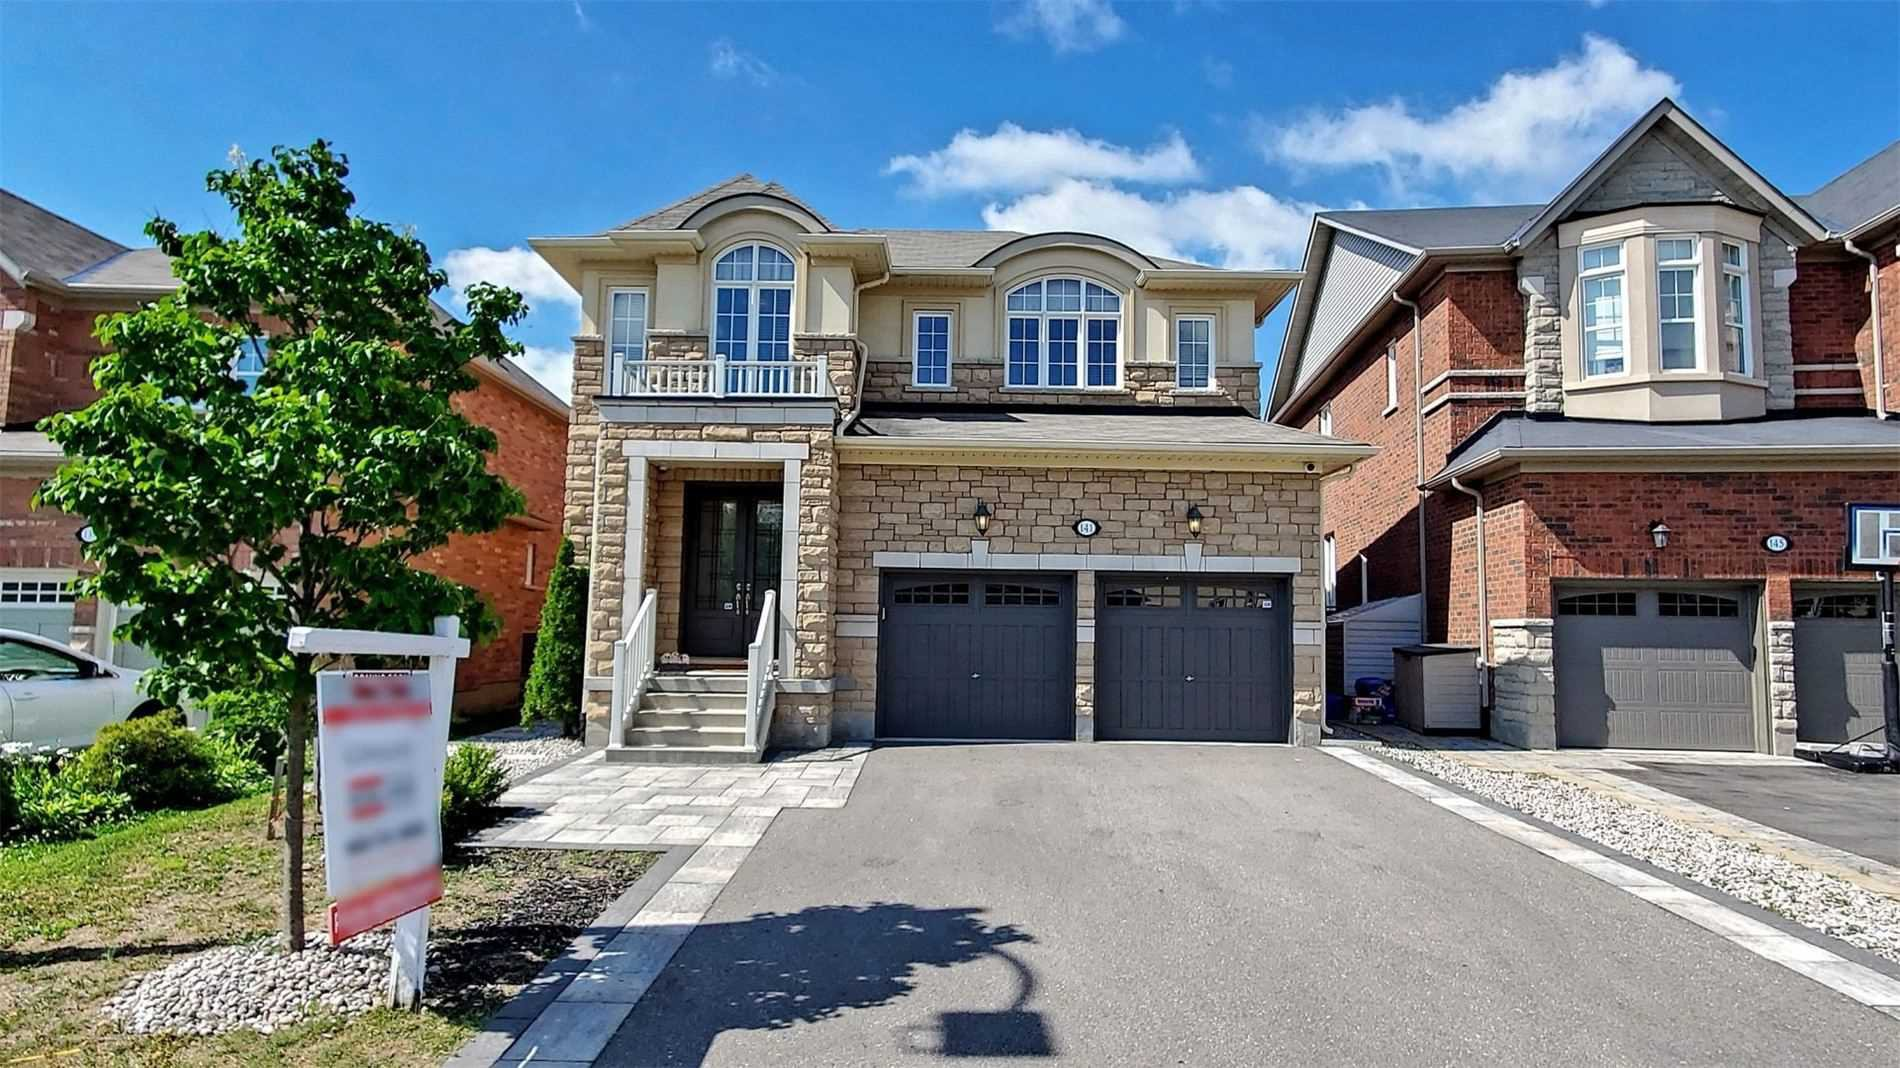 Main Photo: 141 Heintzman Crescent in Vaughan: Patterson House (2-Storey) for sale : MLS®# N4820193